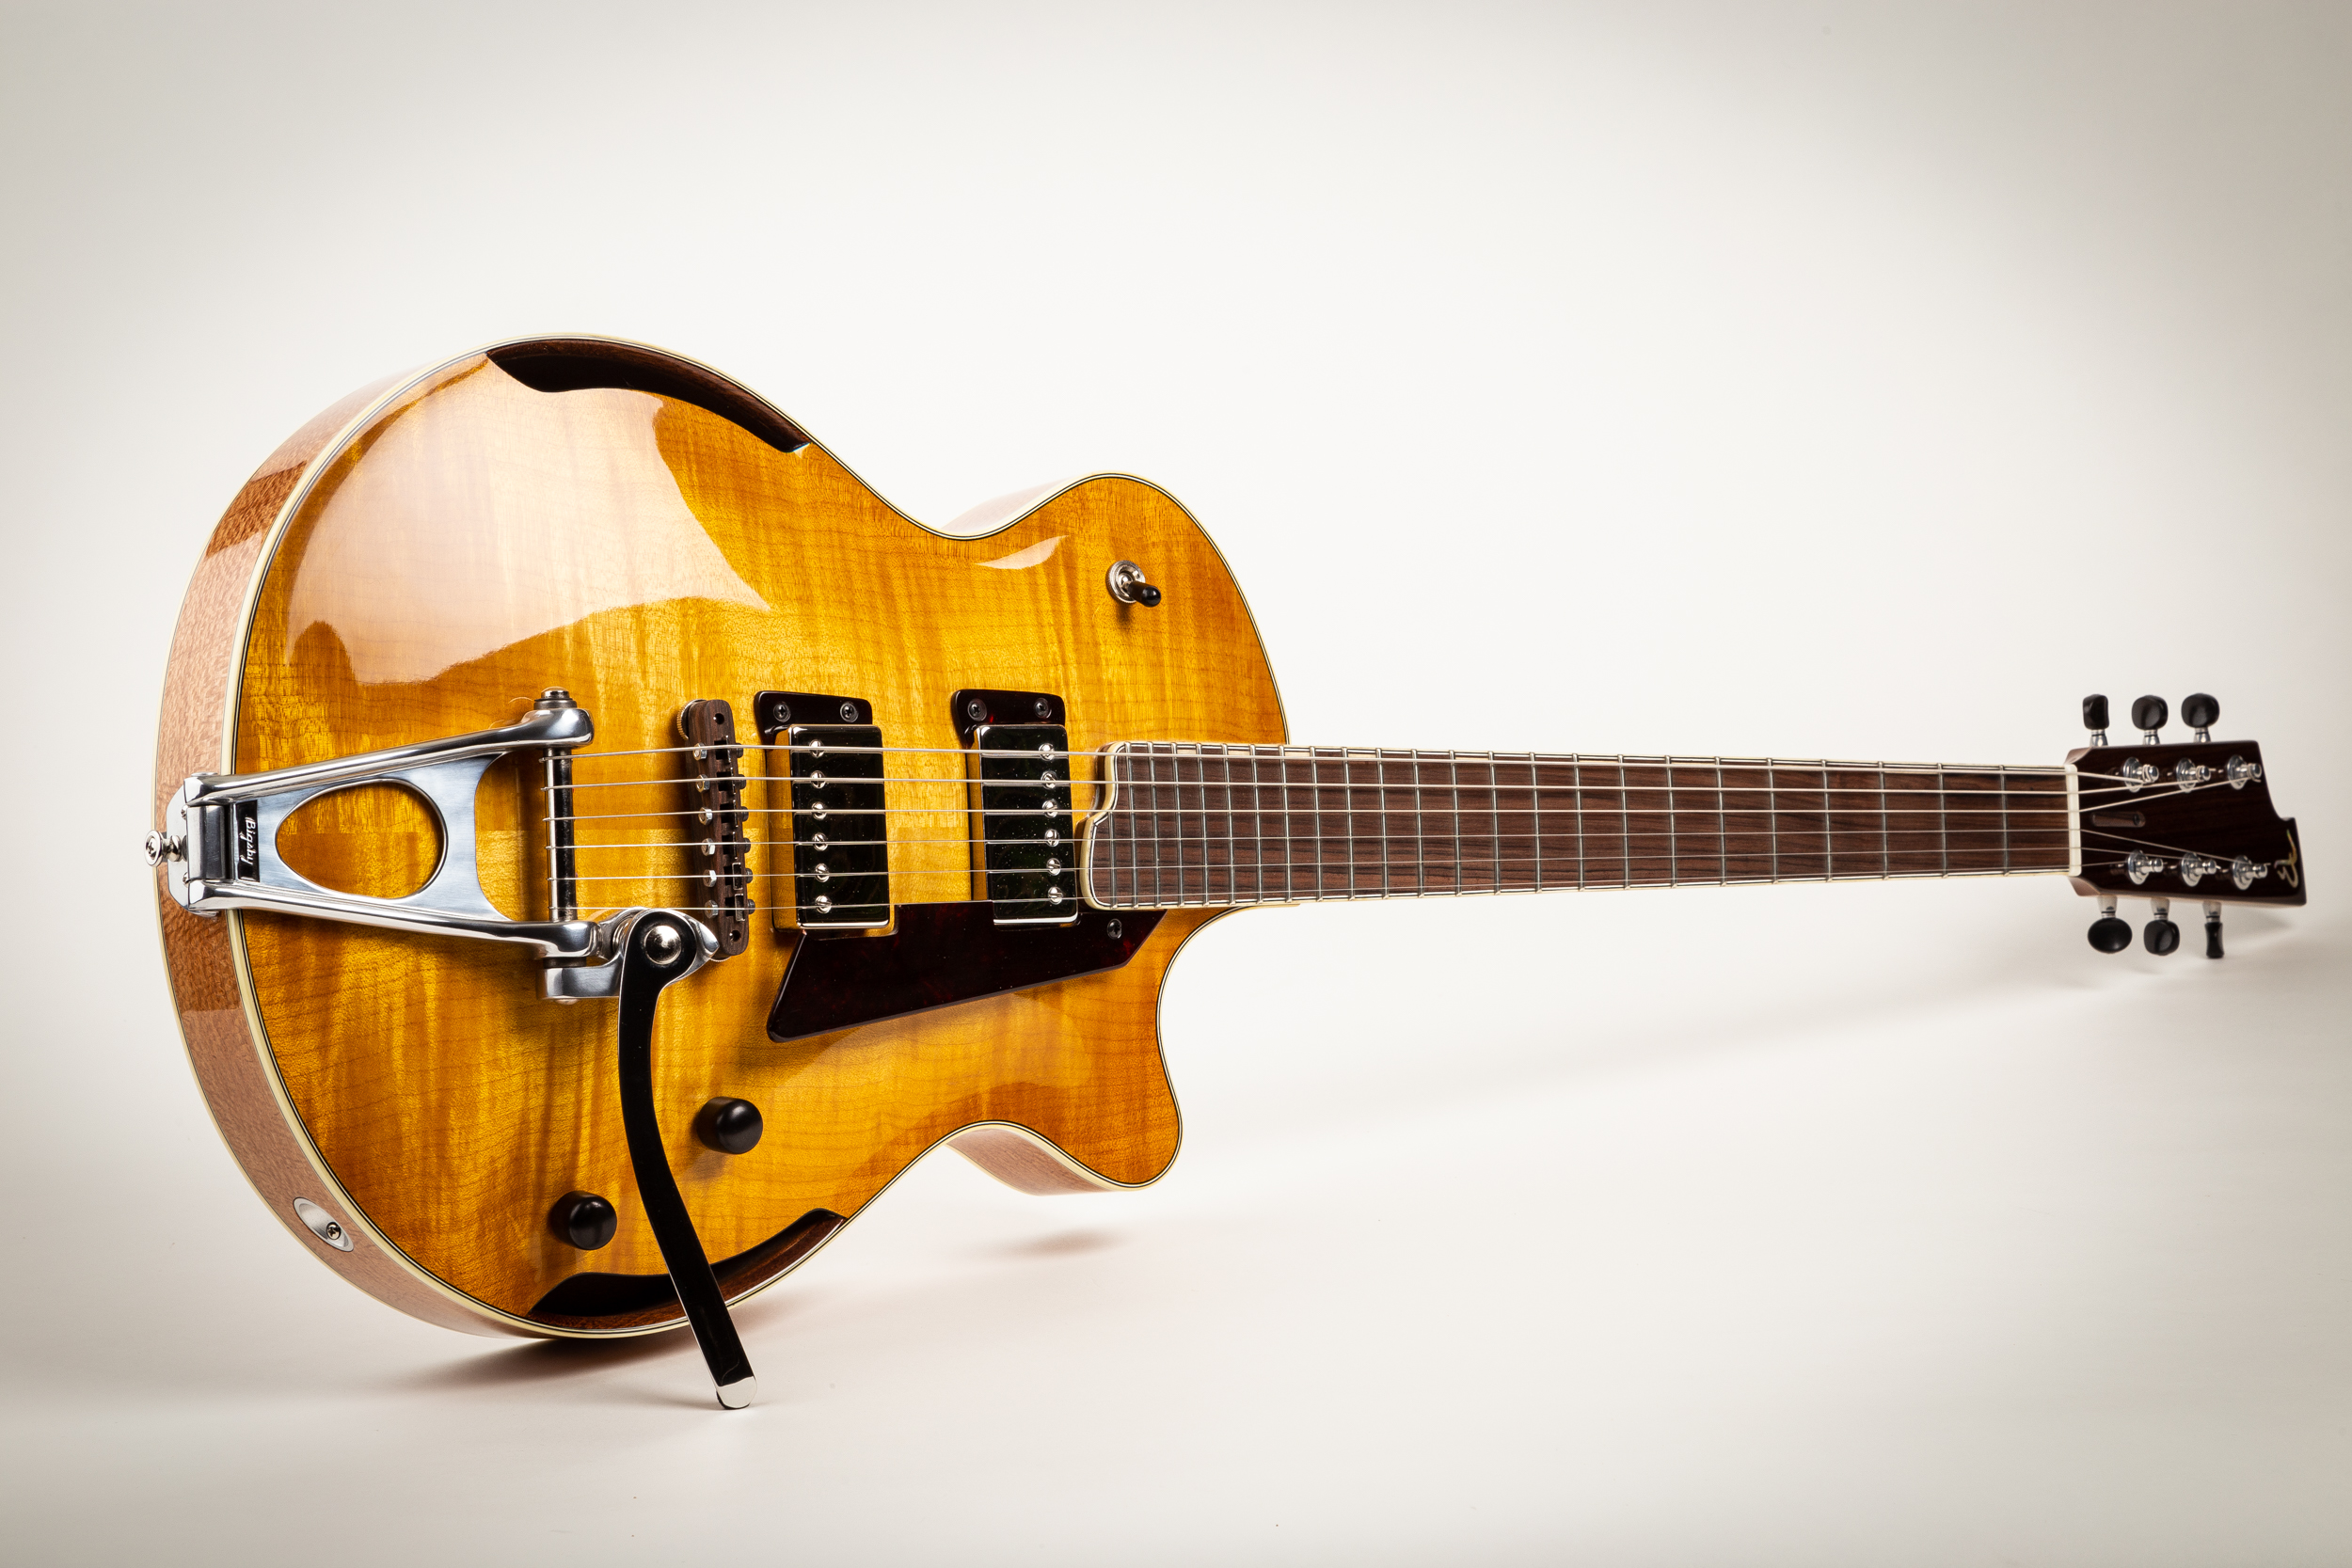 Blonde bombshell w/Bigsby flat trem. Available at    Destroy All Guitars